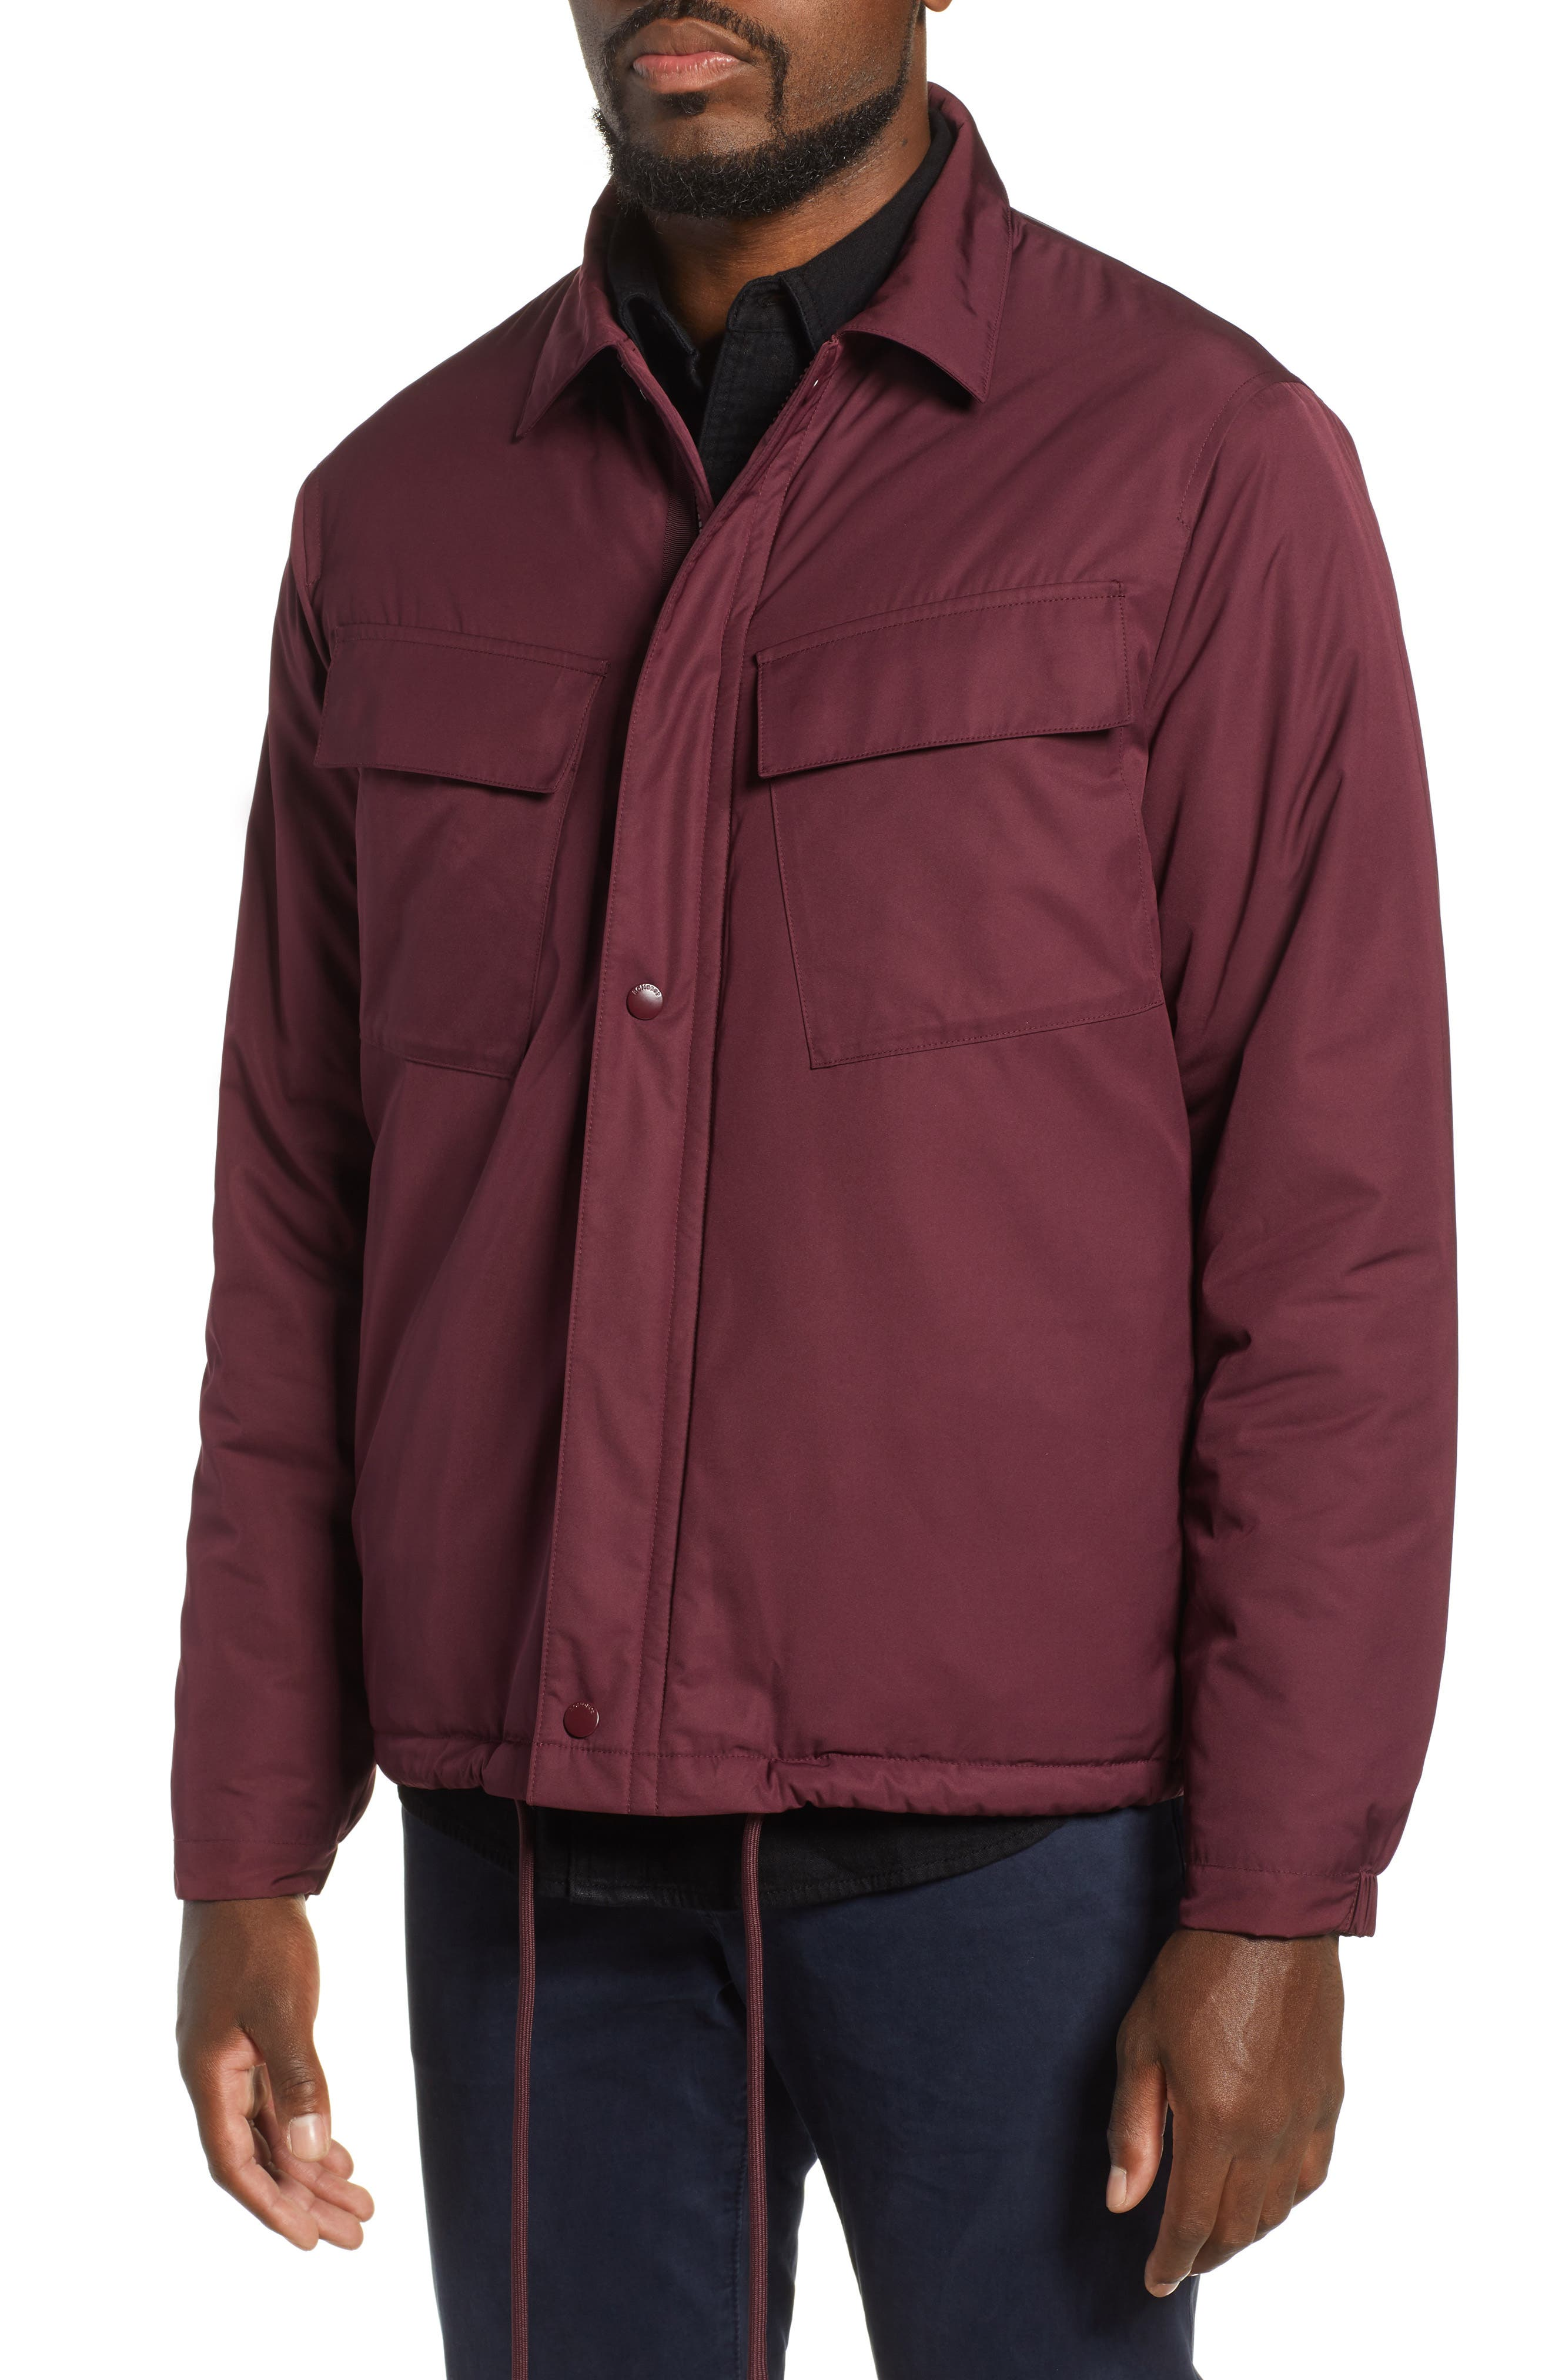 Coaches Jacket,                             Alternate thumbnail 4, color,                             BURGUNDY